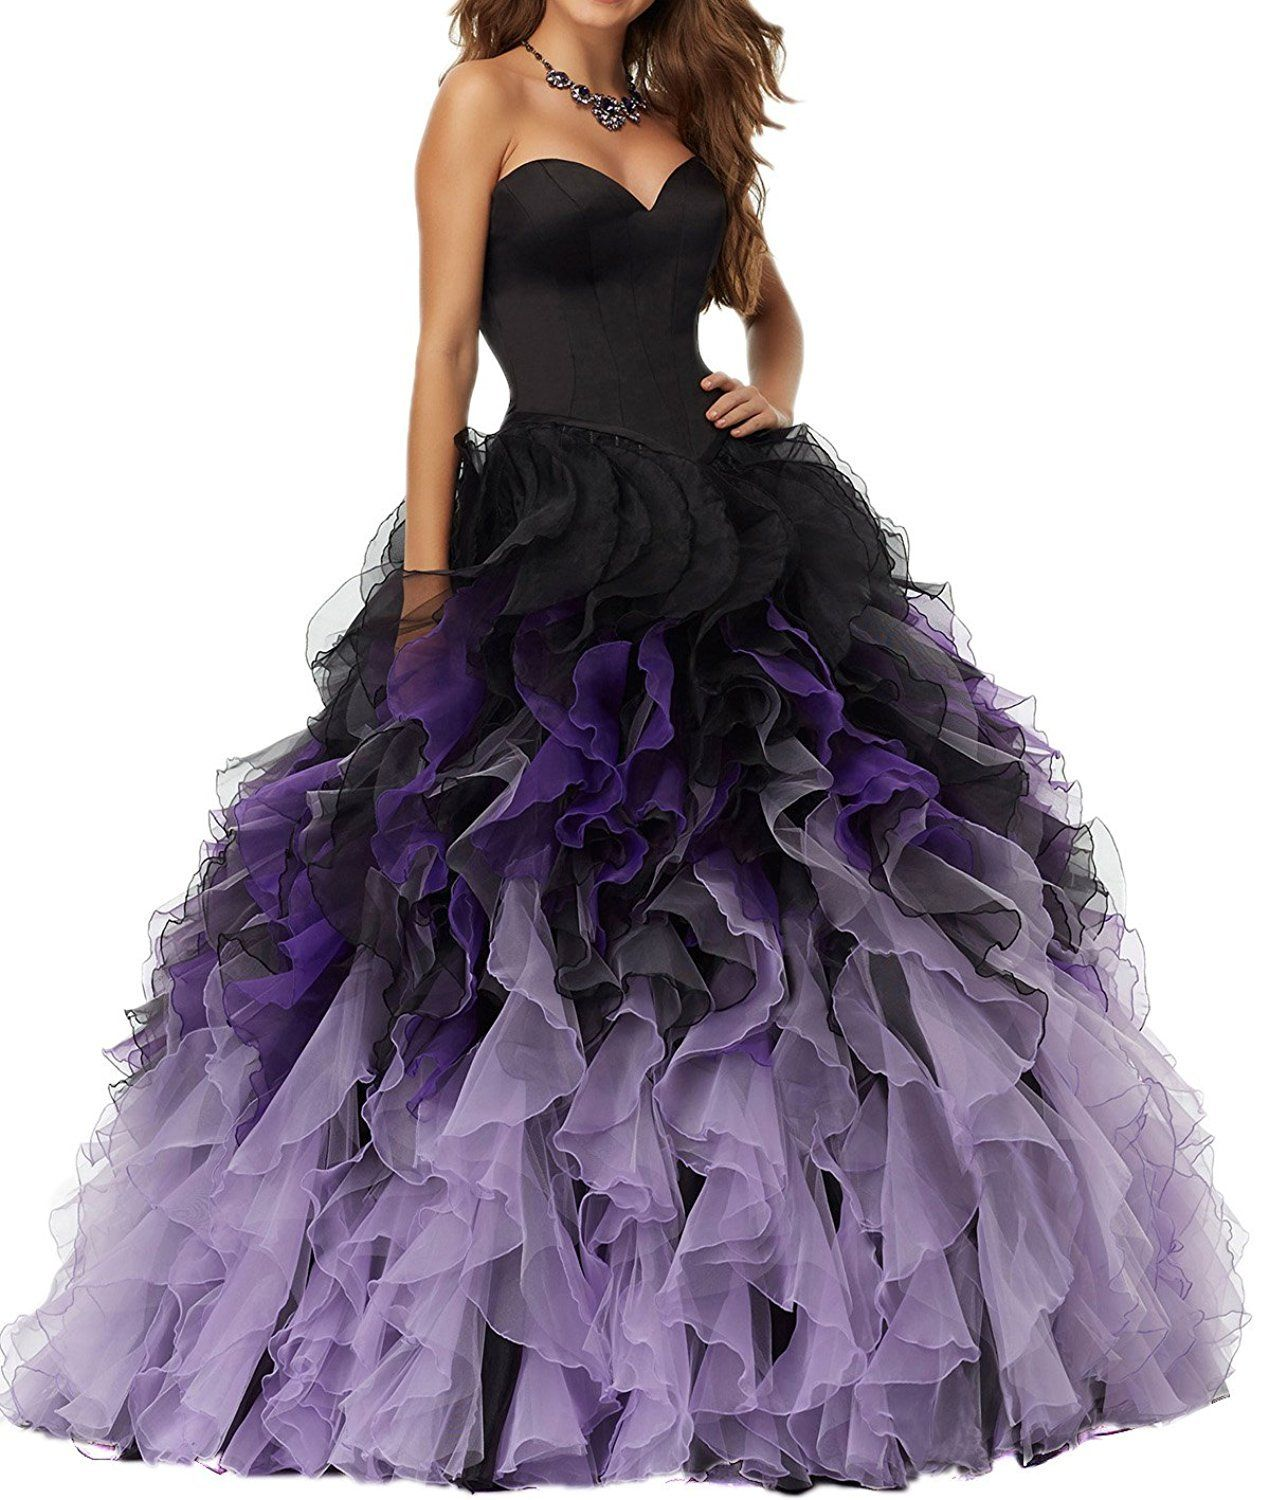 Yanlian sweethart ball gown puffy ombre organza prom dresses long